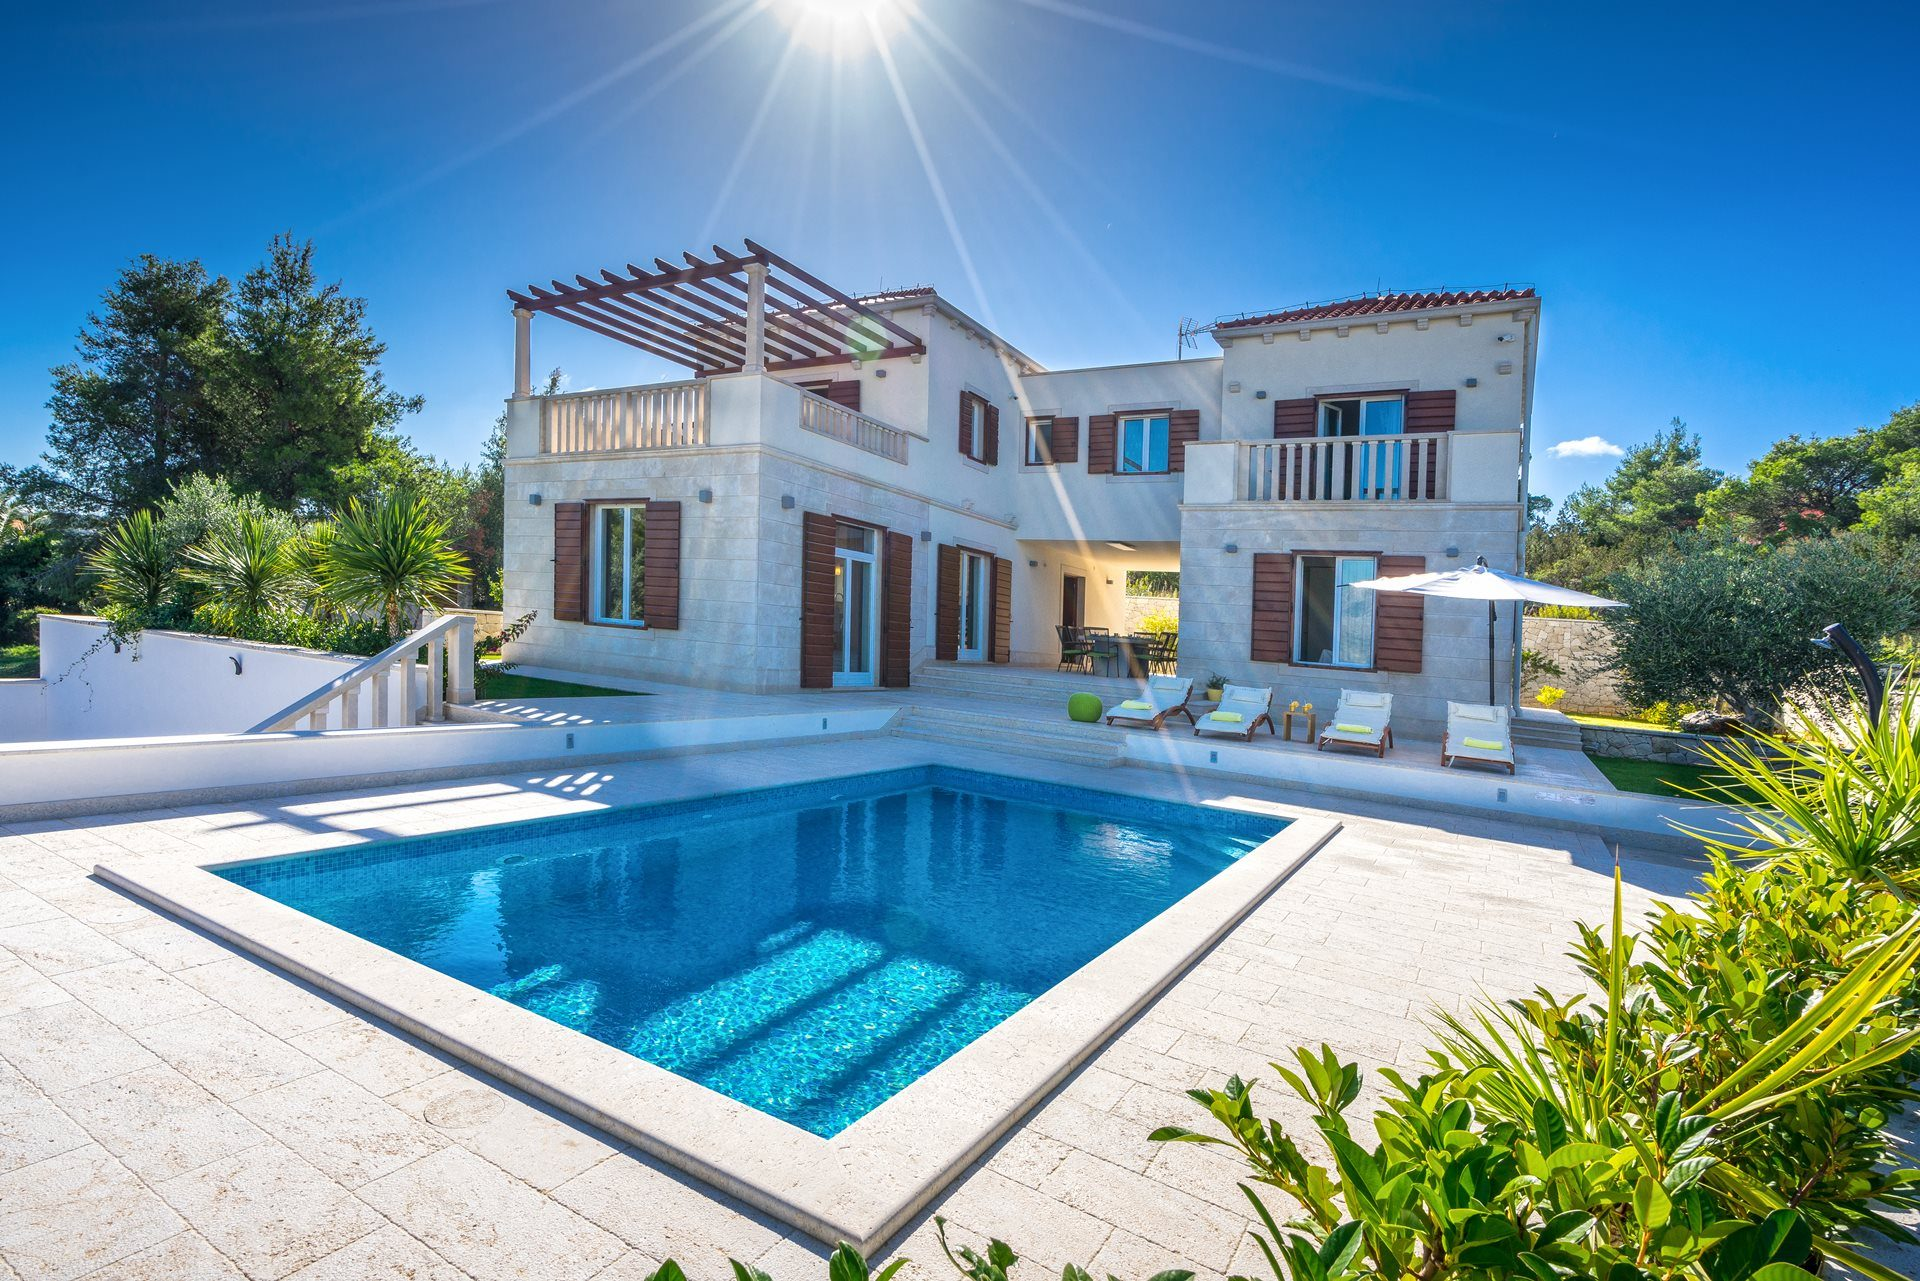 location villa luxe, Croatie, CROBRA 302